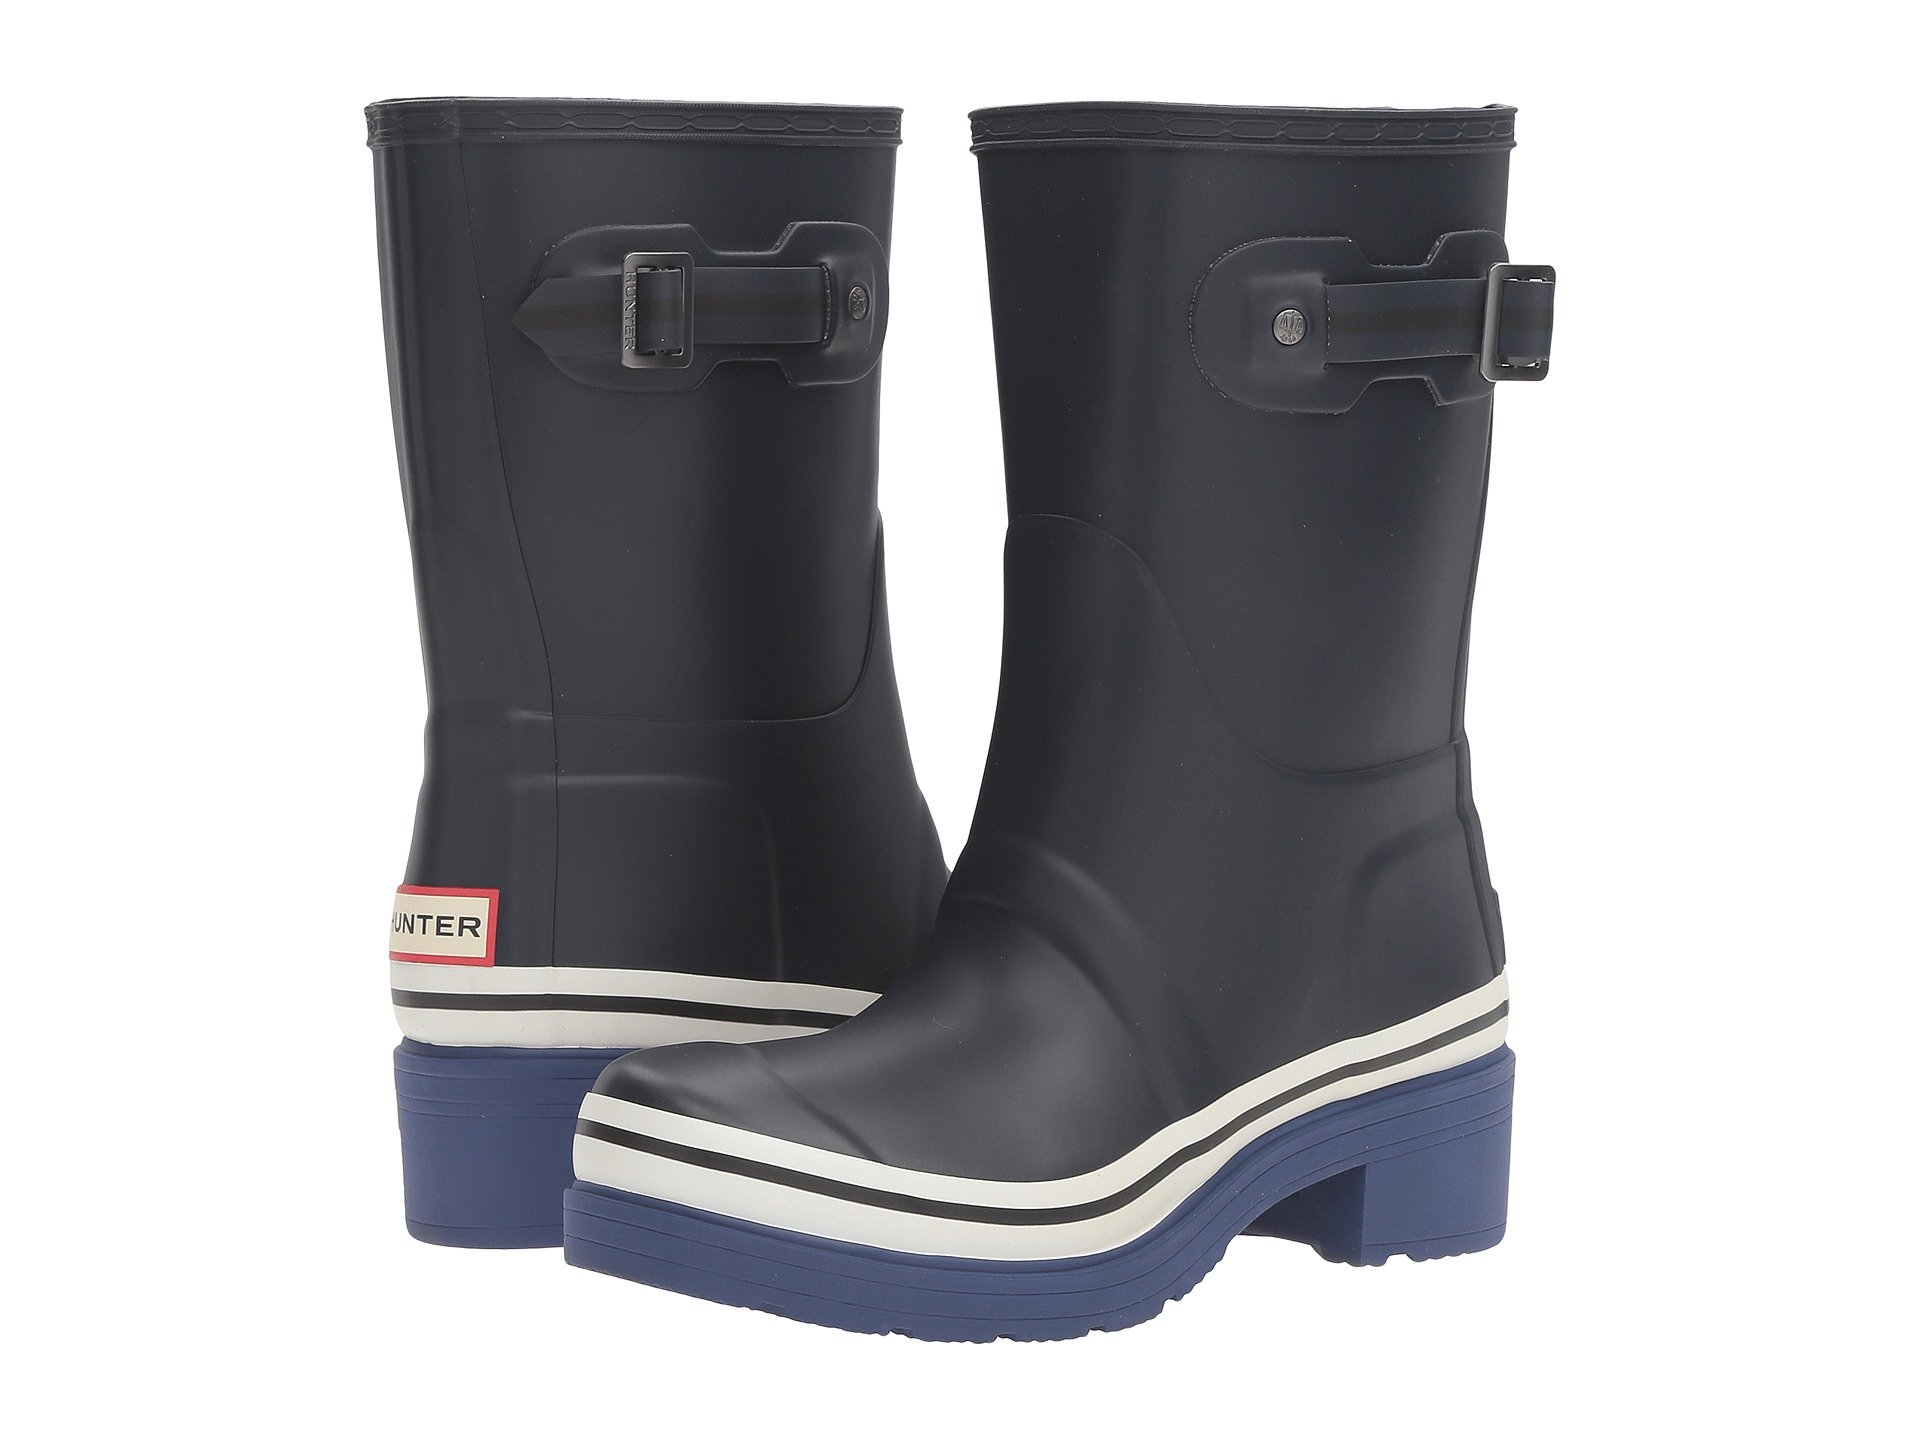 Hunter Original Ankle Boot Buoy Stripes At 6pm